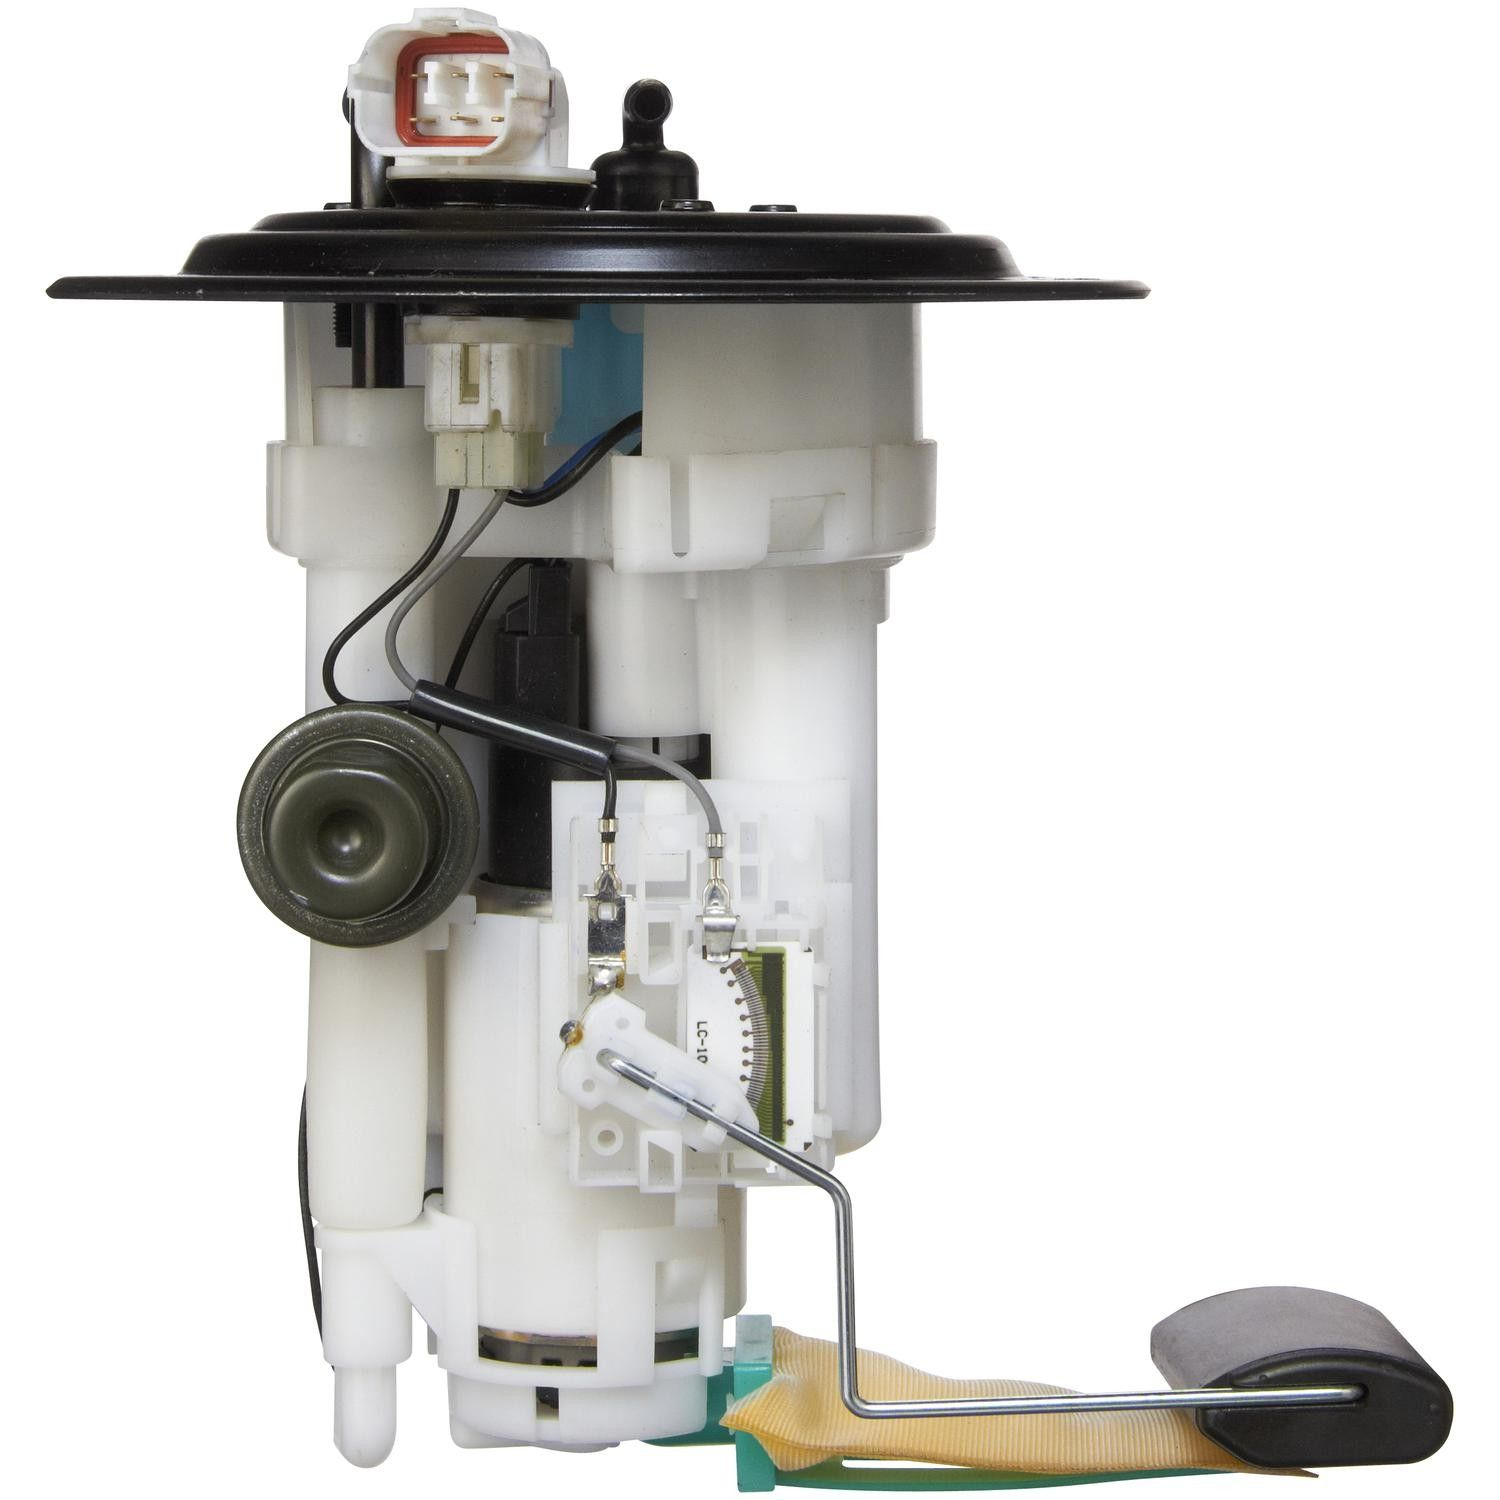 Hyundai Accent Fuel Pump Module Assembly Replacement Airtex Auto 7 2003 Kia Spectra System 4 Cyl 16l Sp3058m With 6 Pins Connector From Apr 14 Internal Strainer Included